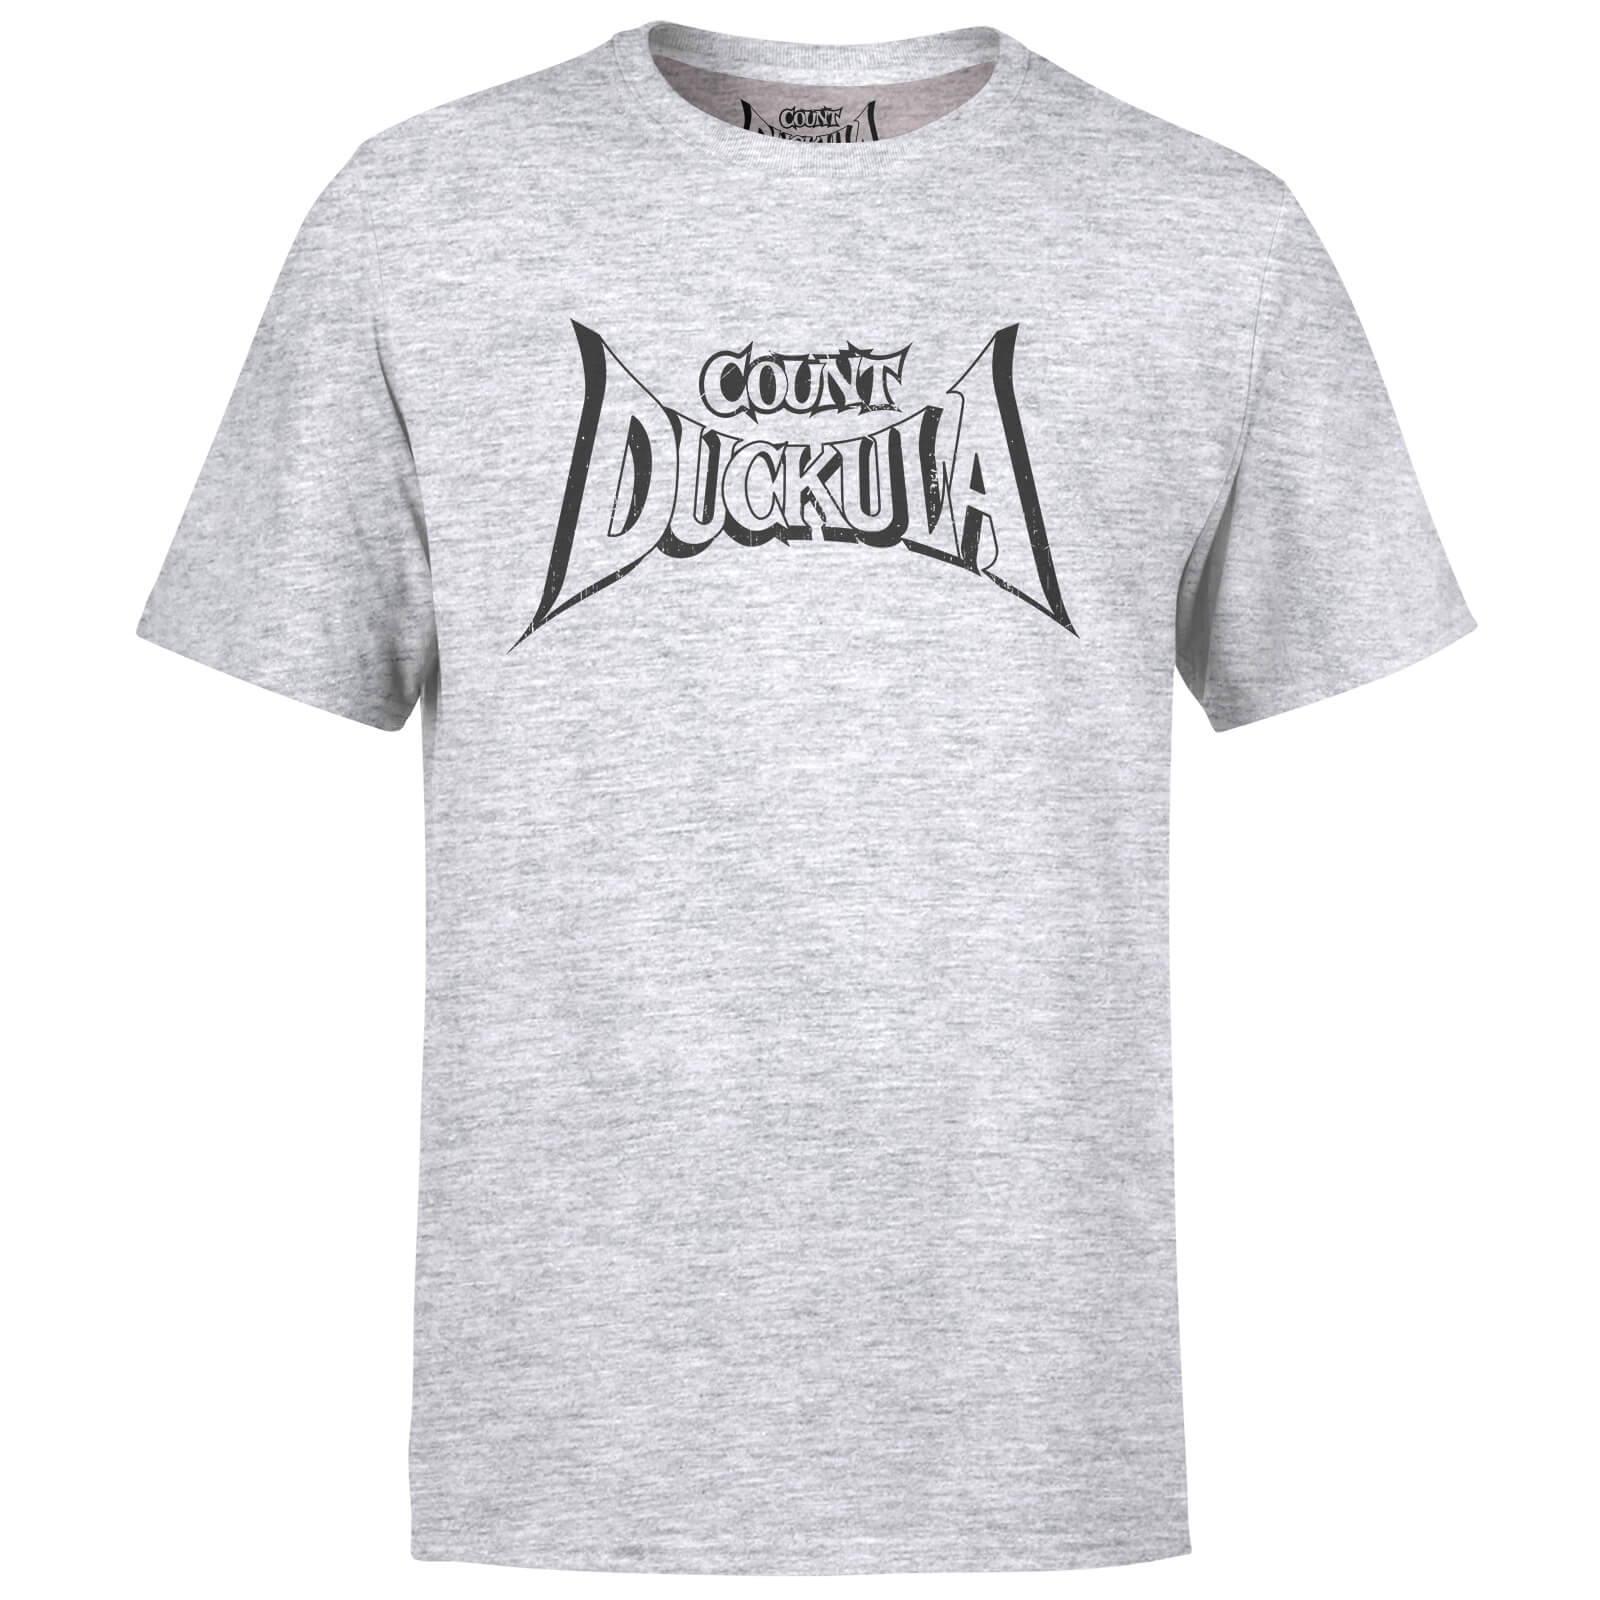 Count Duckula Logo Grey T-Shirt